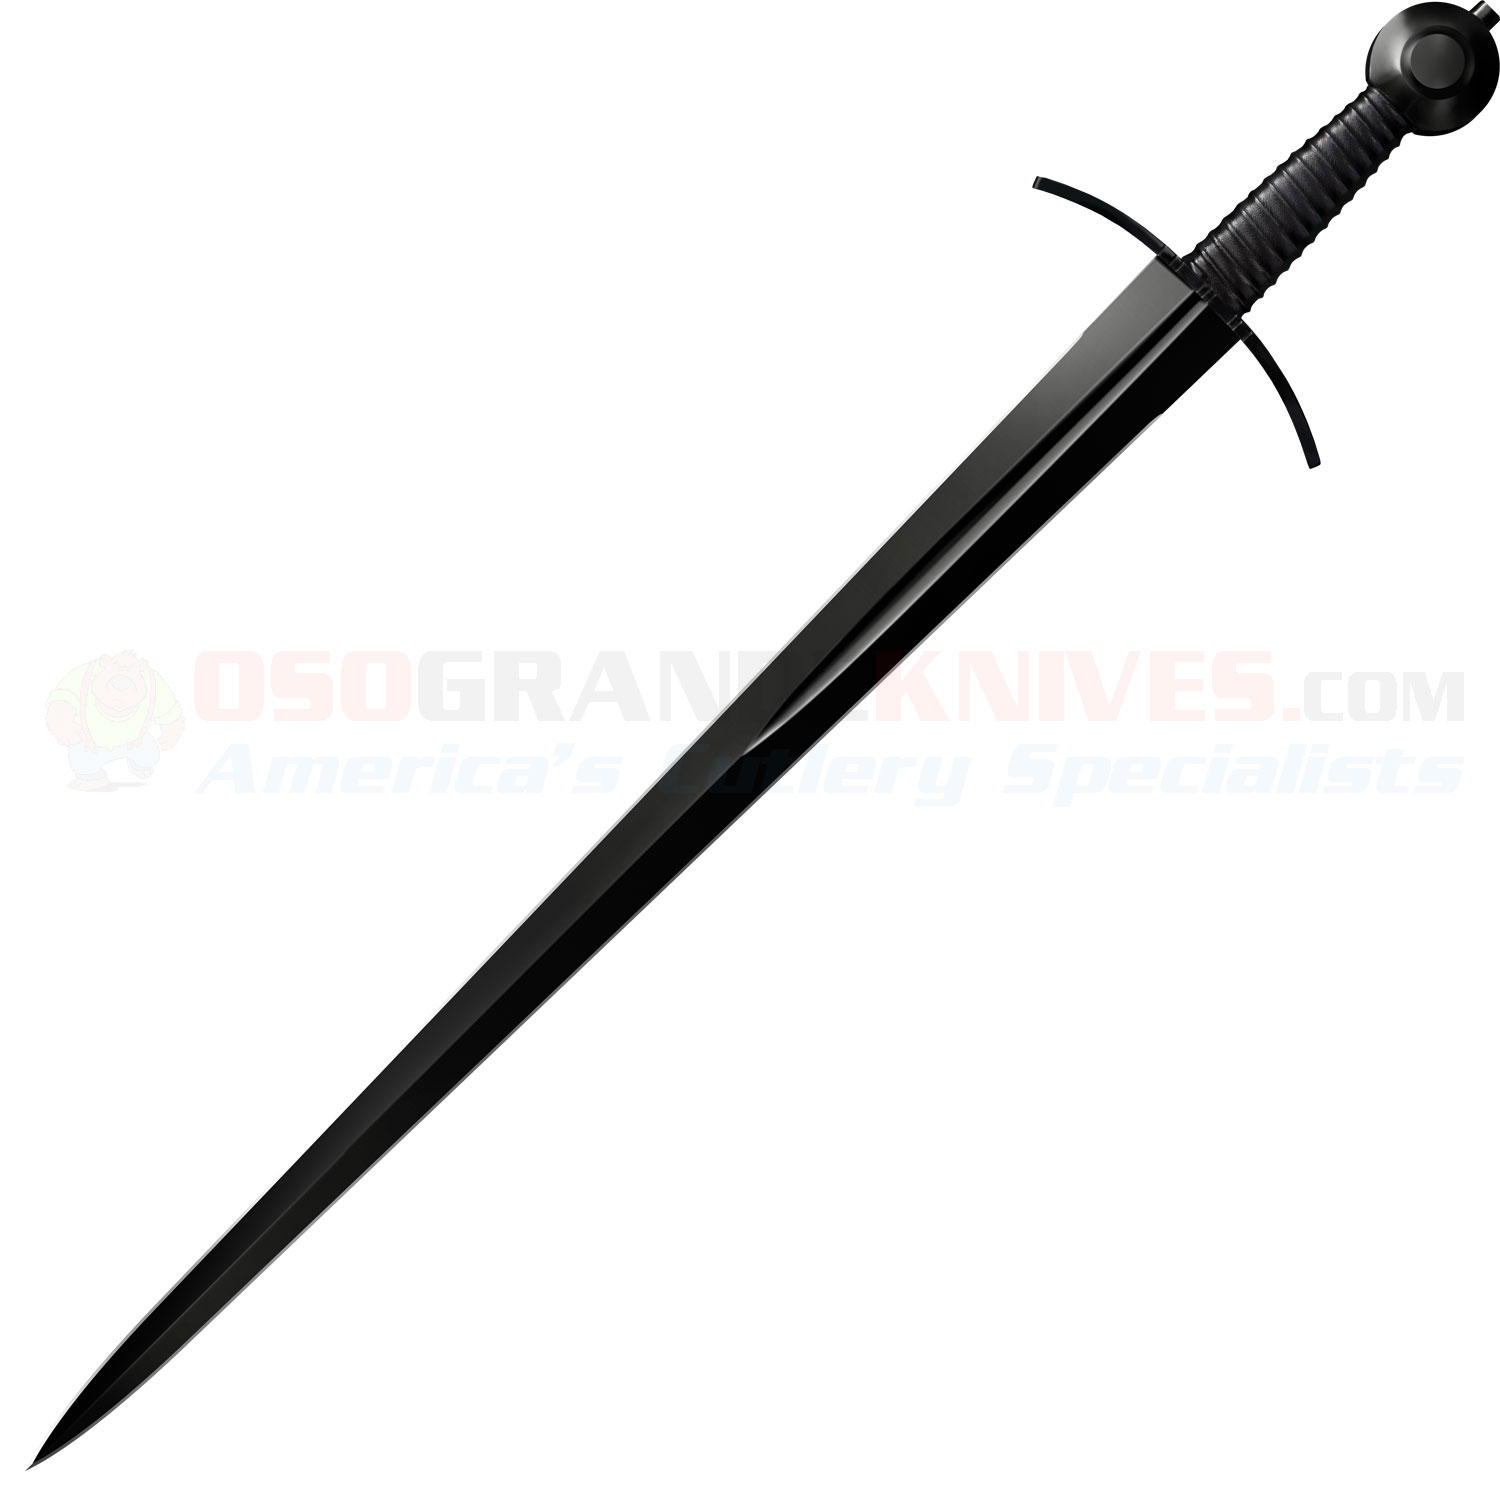 Cold Steel 88arm Maa Arming Sword 28 0 Inch Blued 1090hc